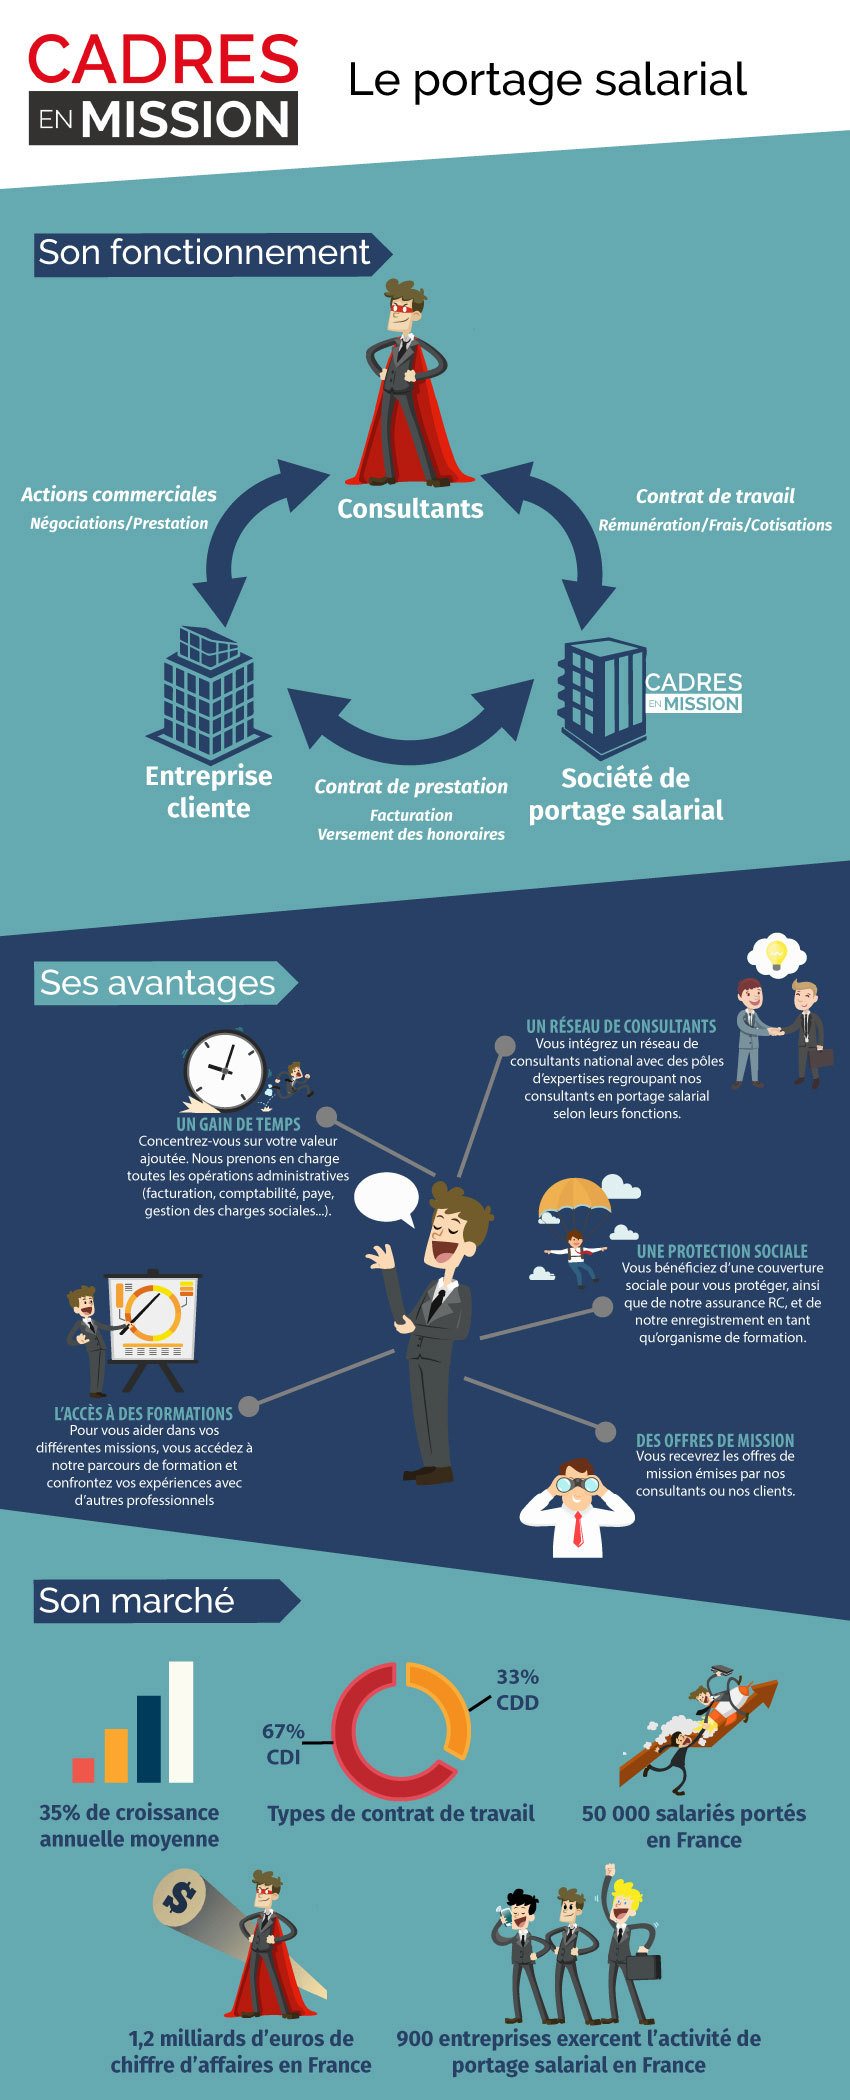 Portage salarial - Infographie